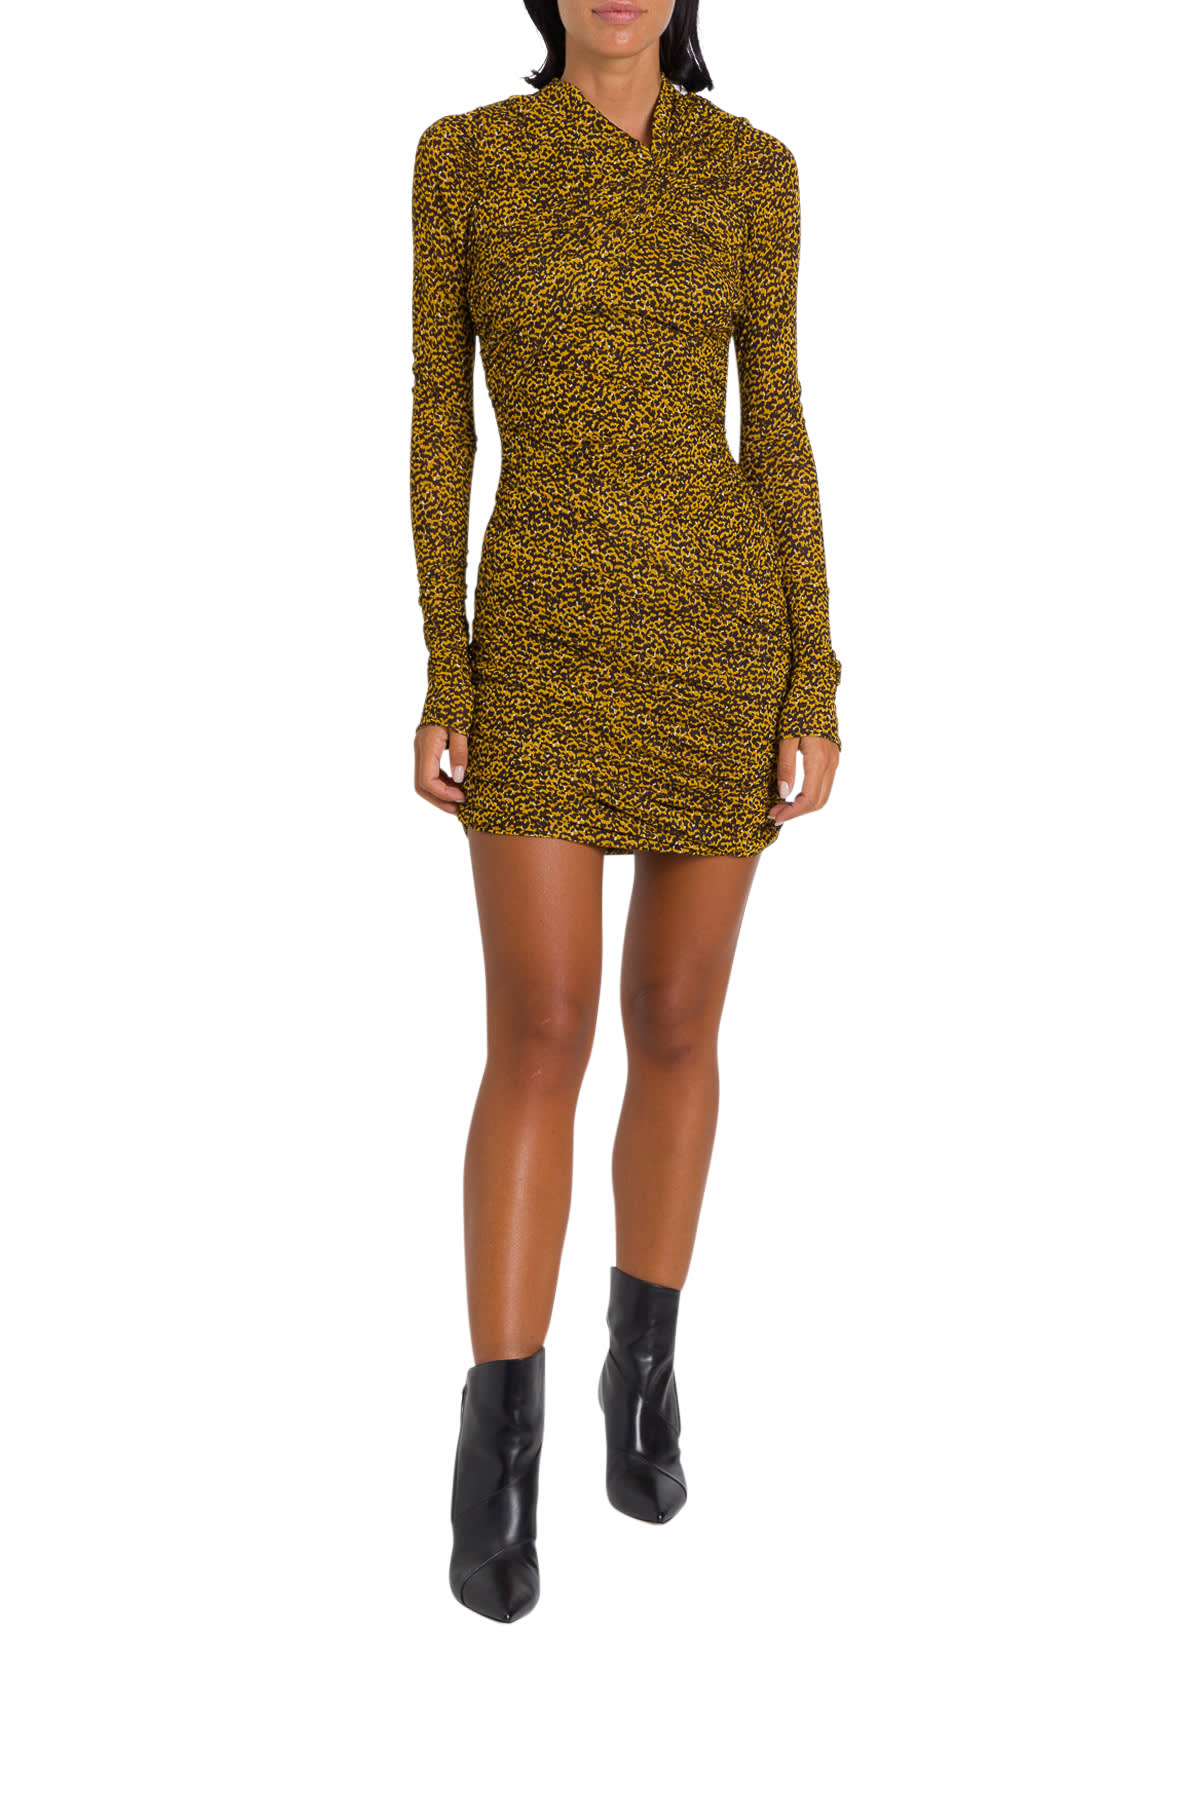 Isabel Marant Jobia Animalier Dress